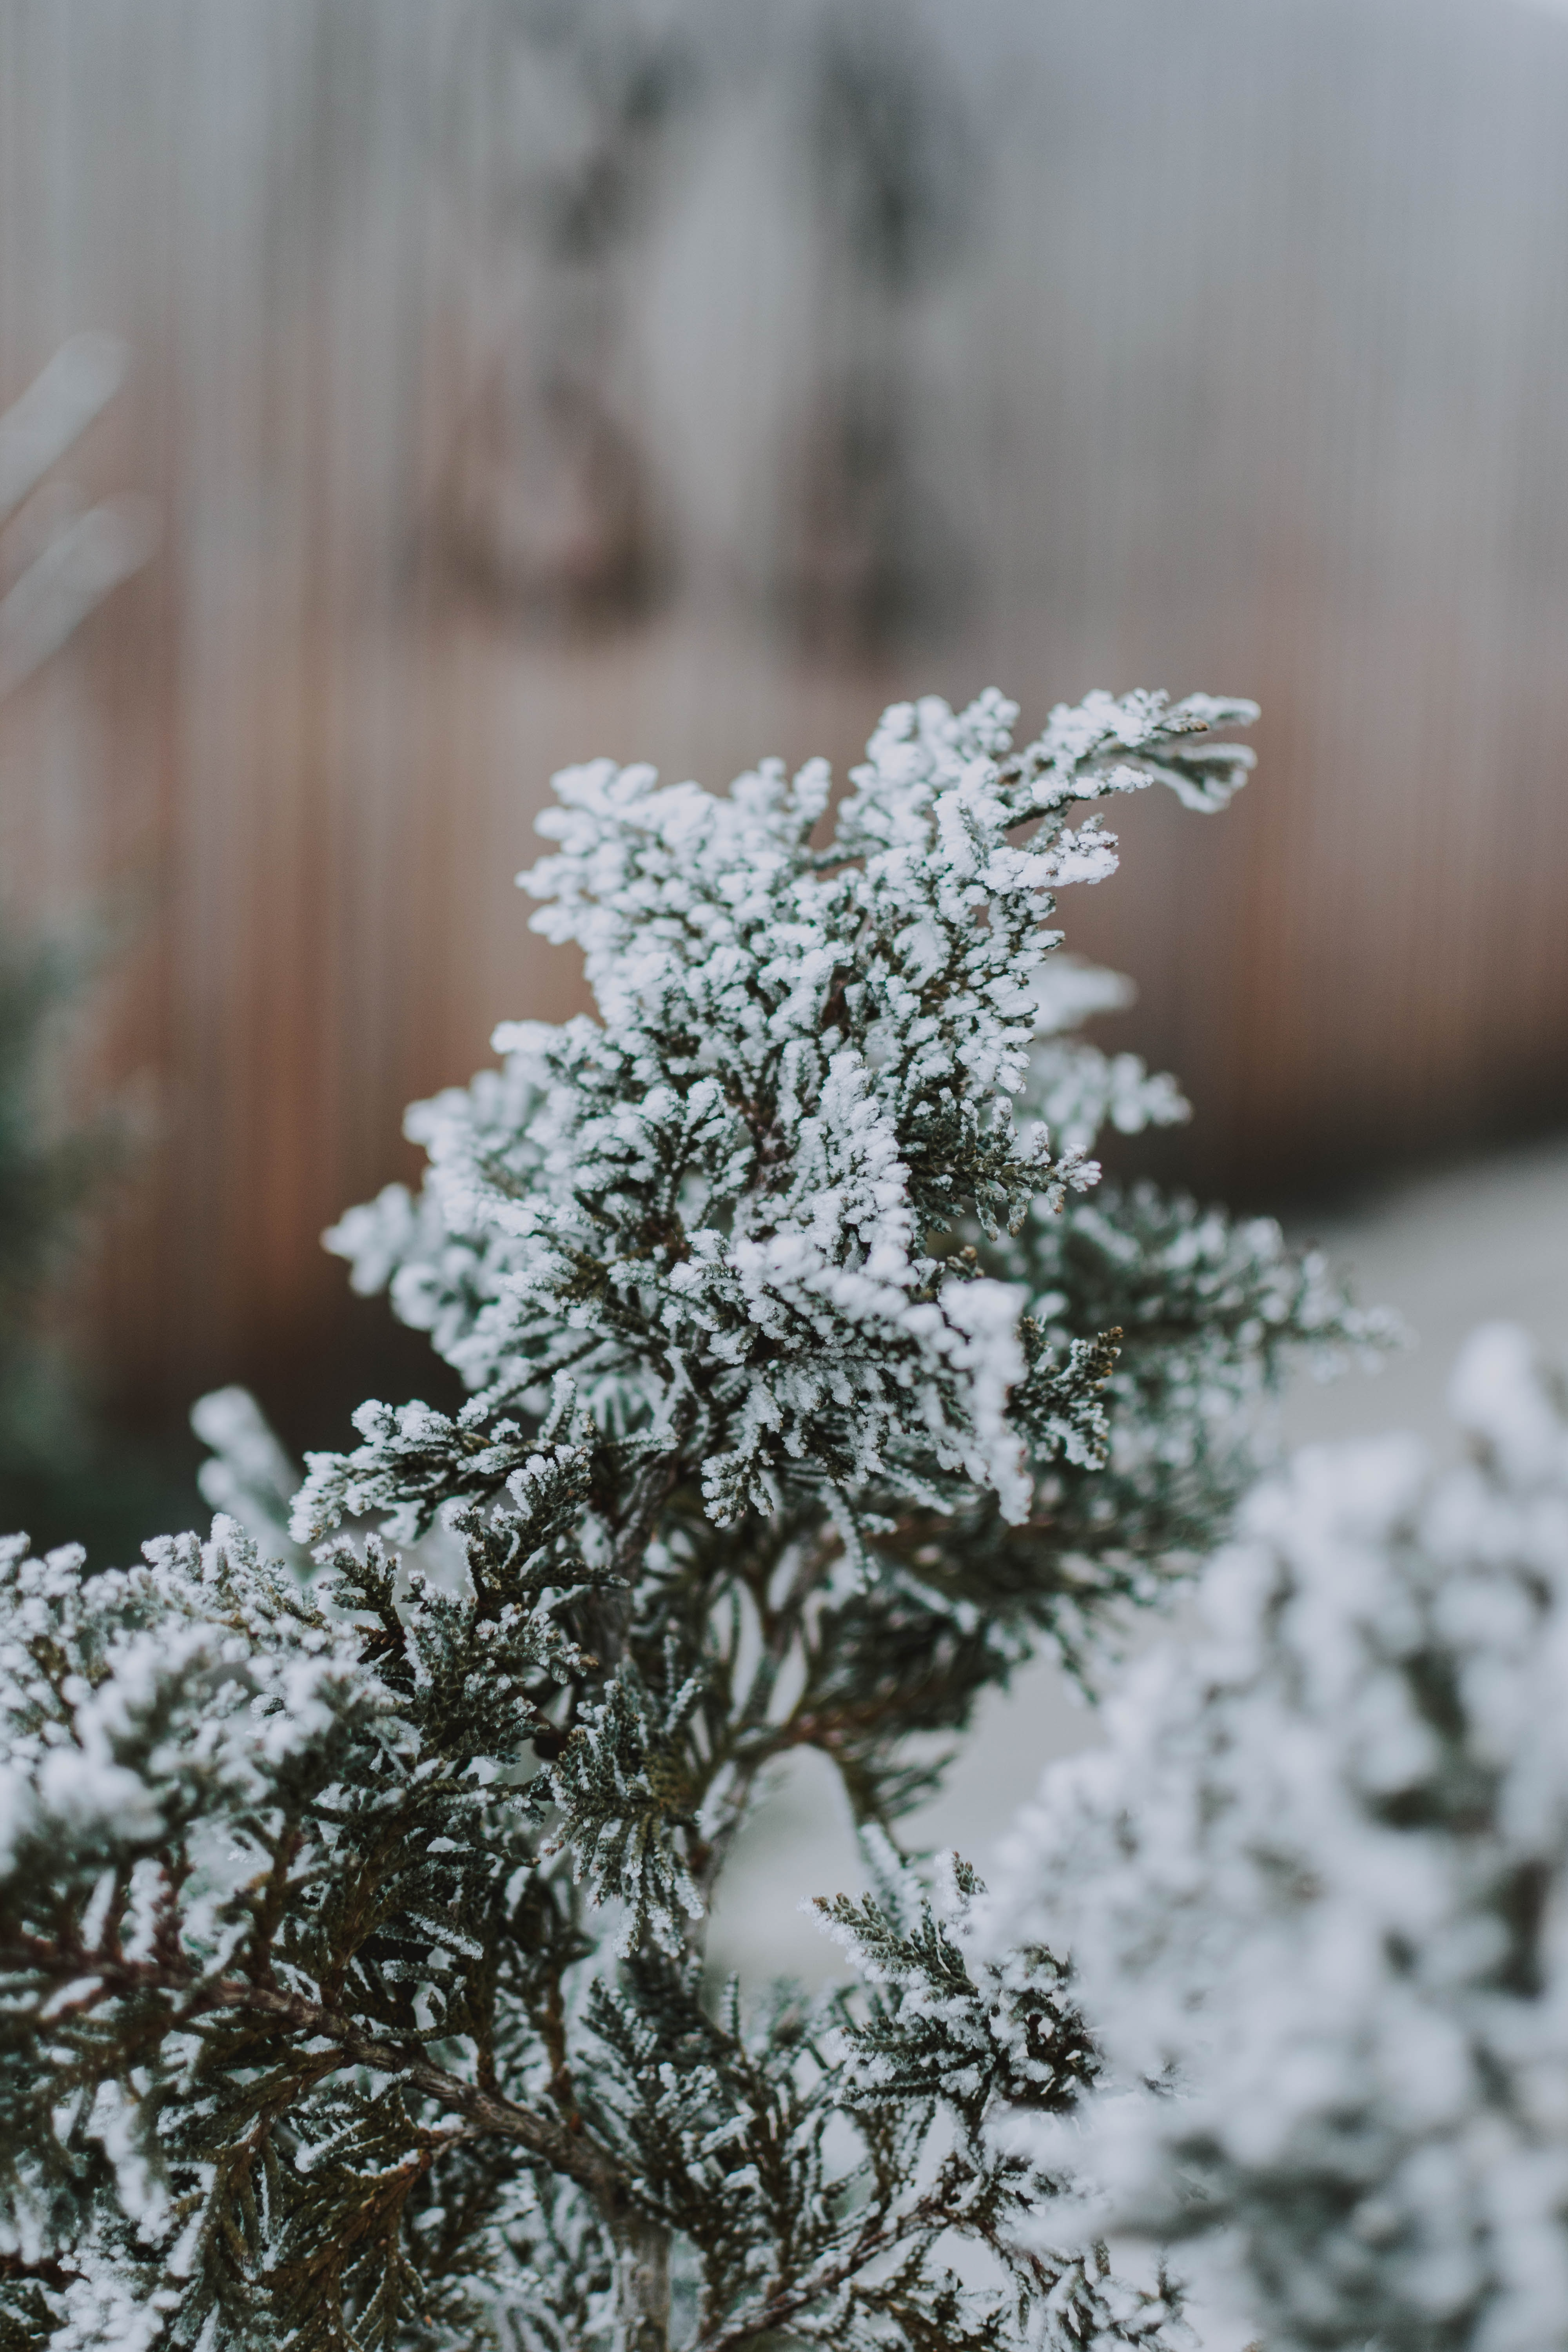 157165 download wallpaper Macro, Branch, Snow, Needles screensavers and pictures for free